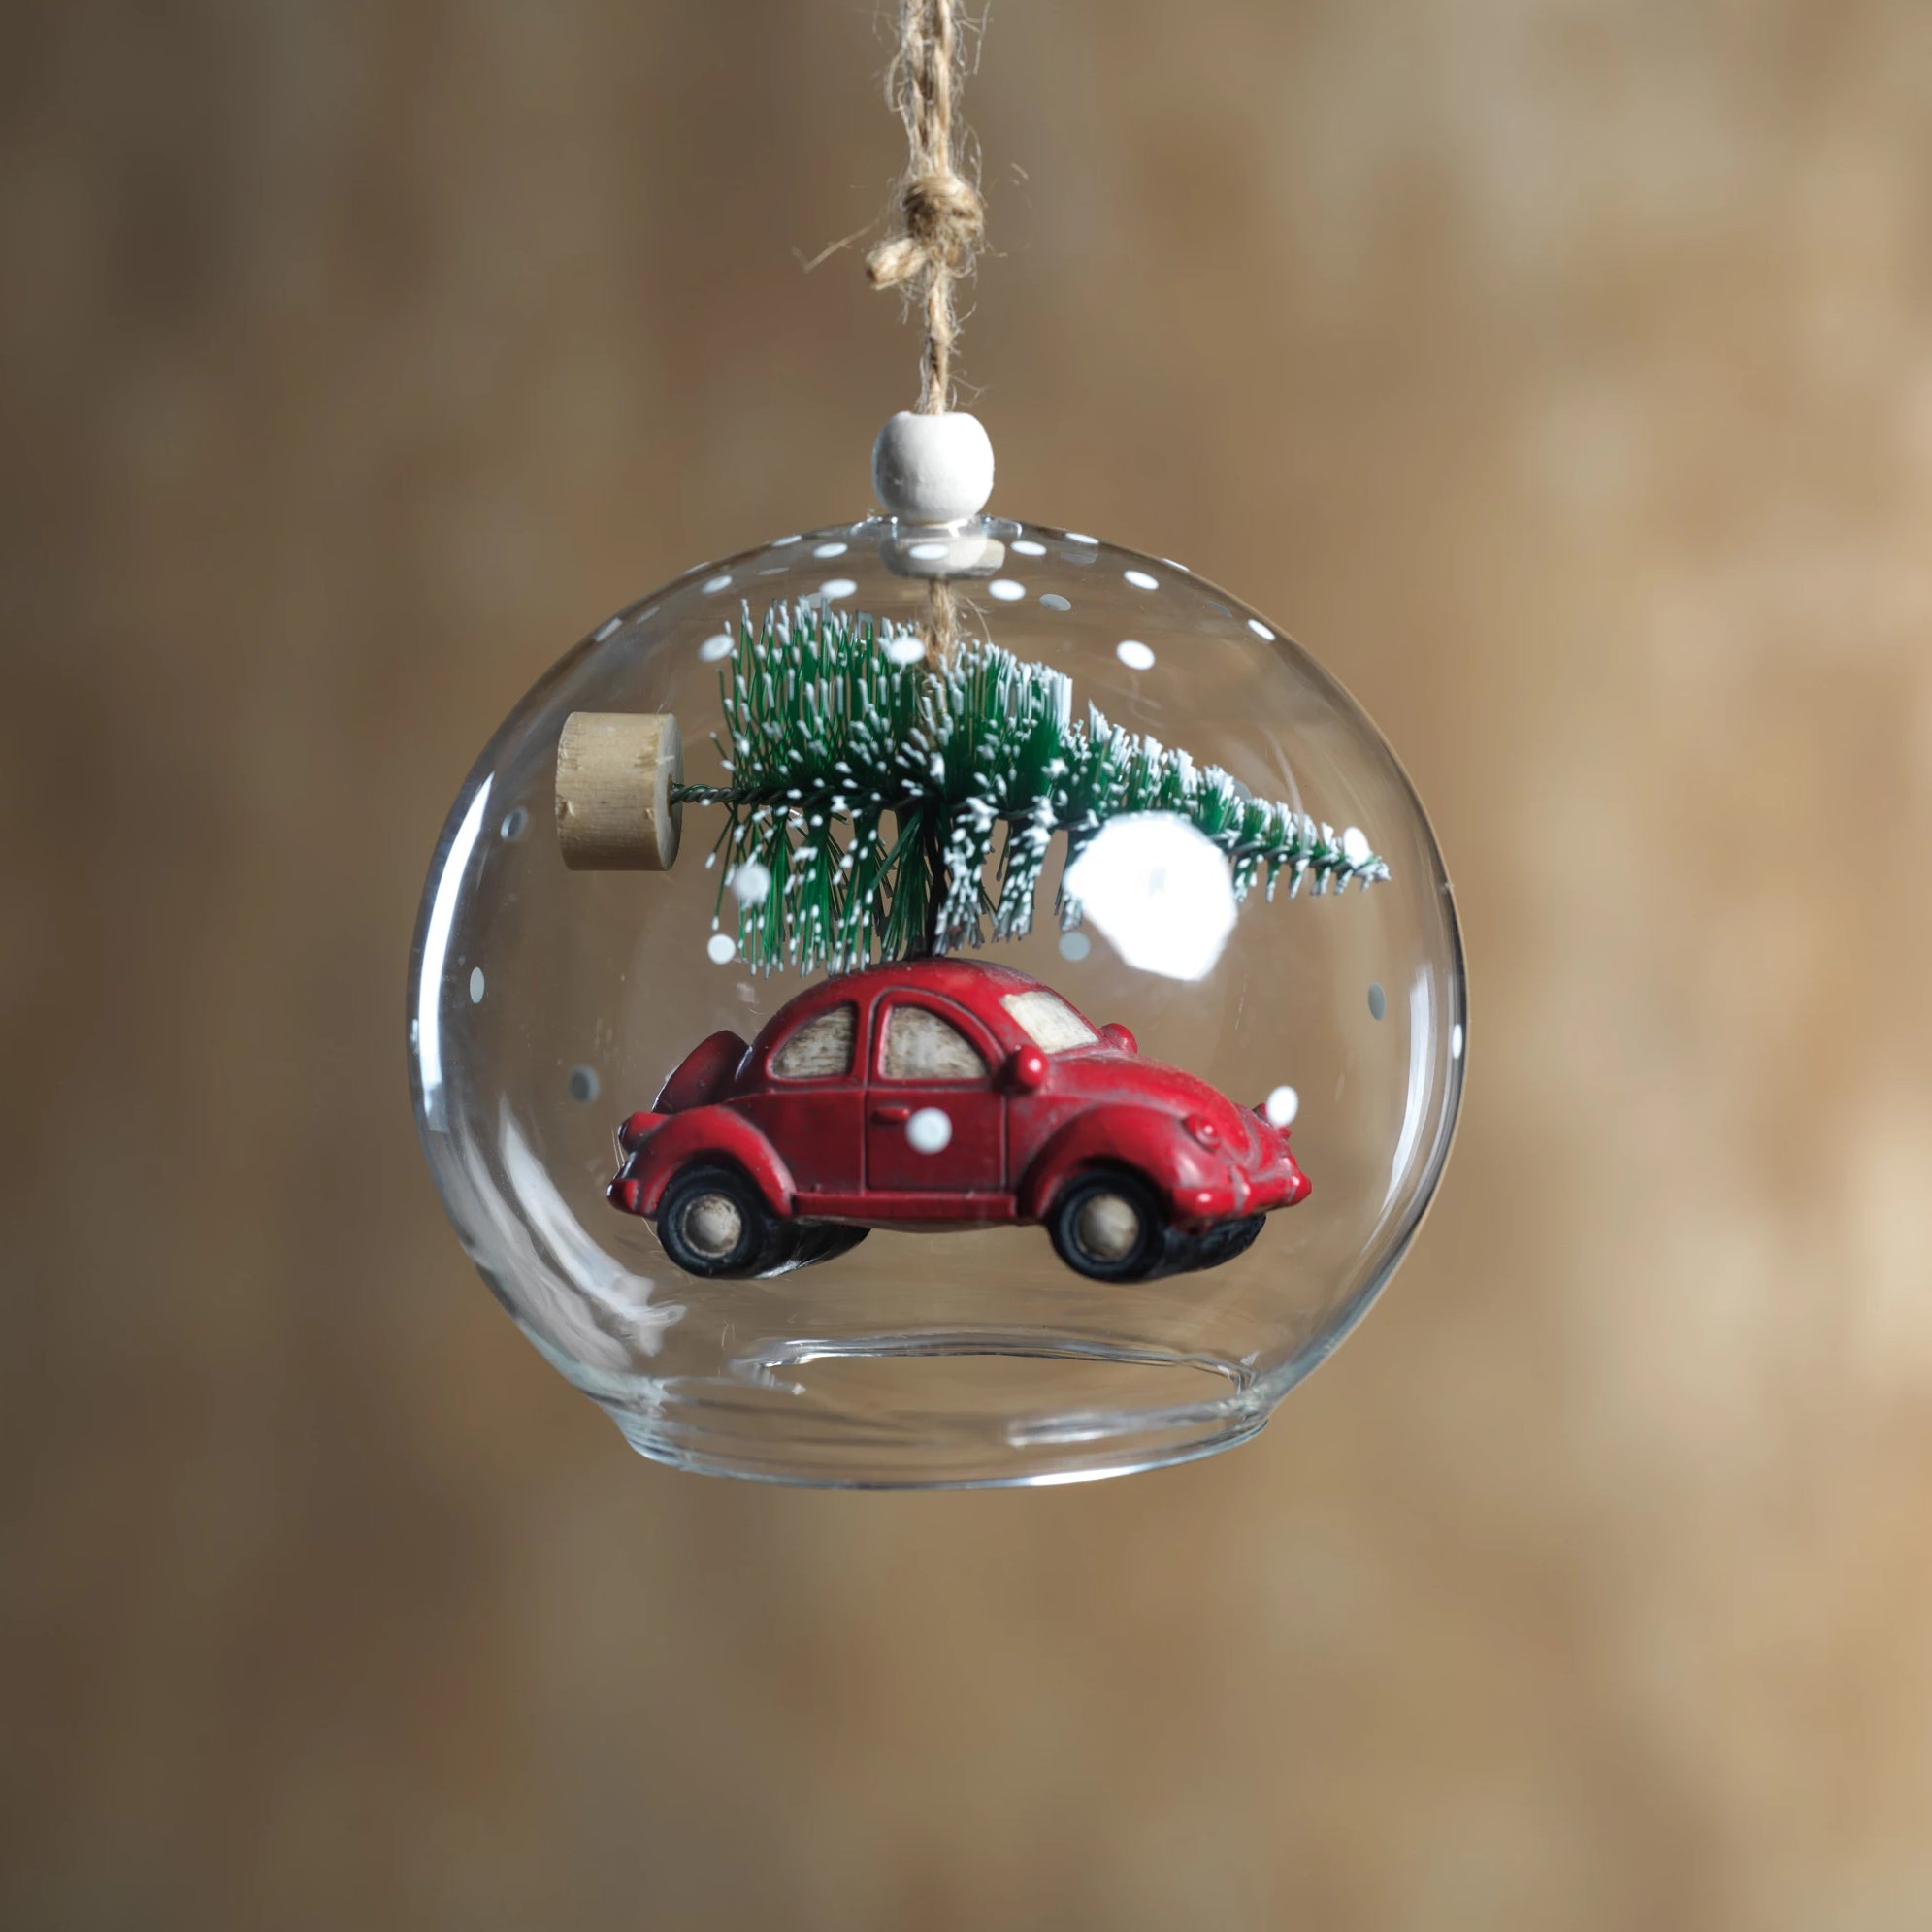 Tree on Car Ornament - Red - Set of 6 - CARLYLE AVENUE